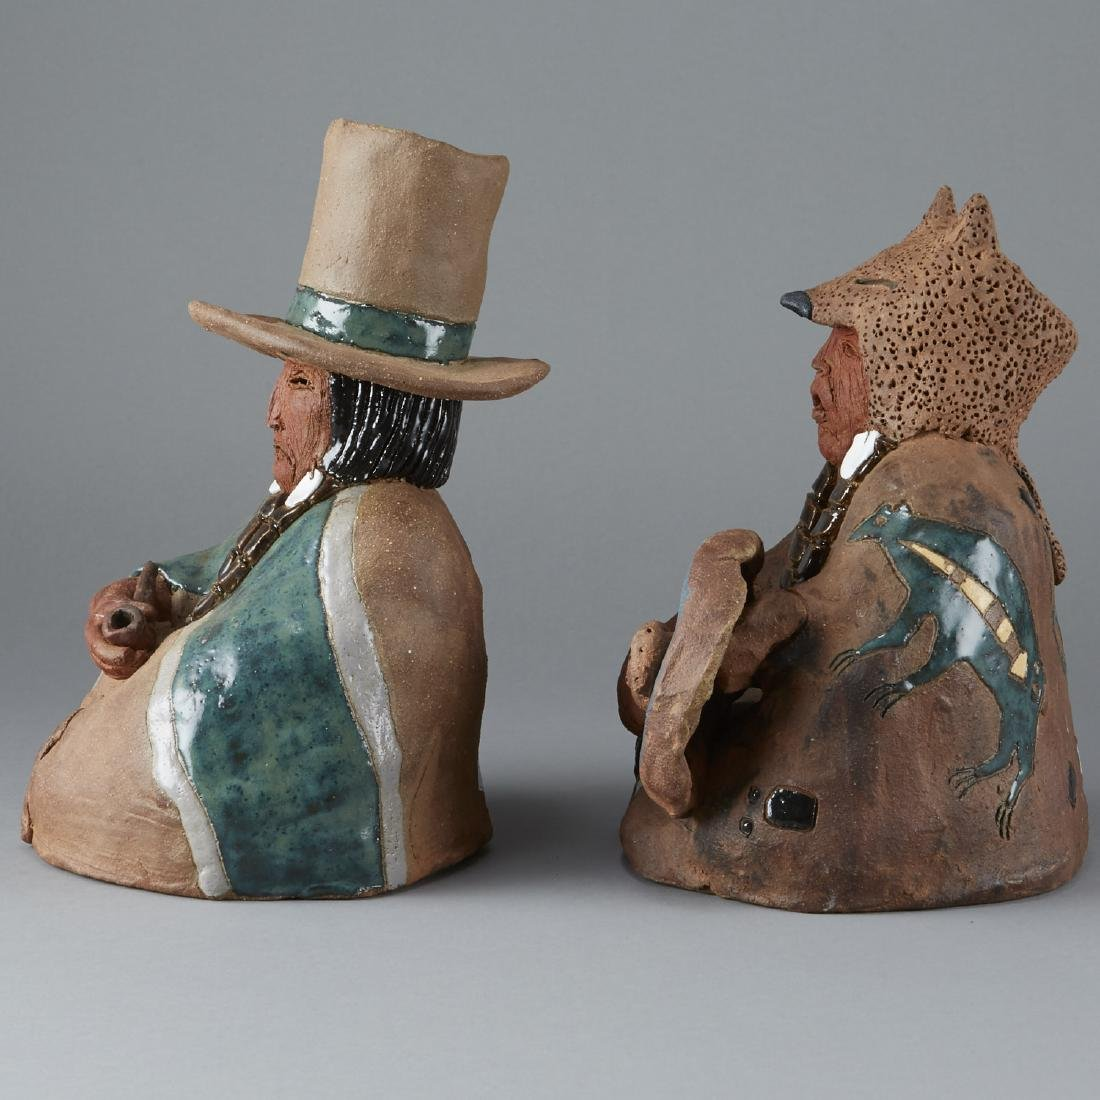 2 Glen LaFontaine Ceramic Sculptures - 2